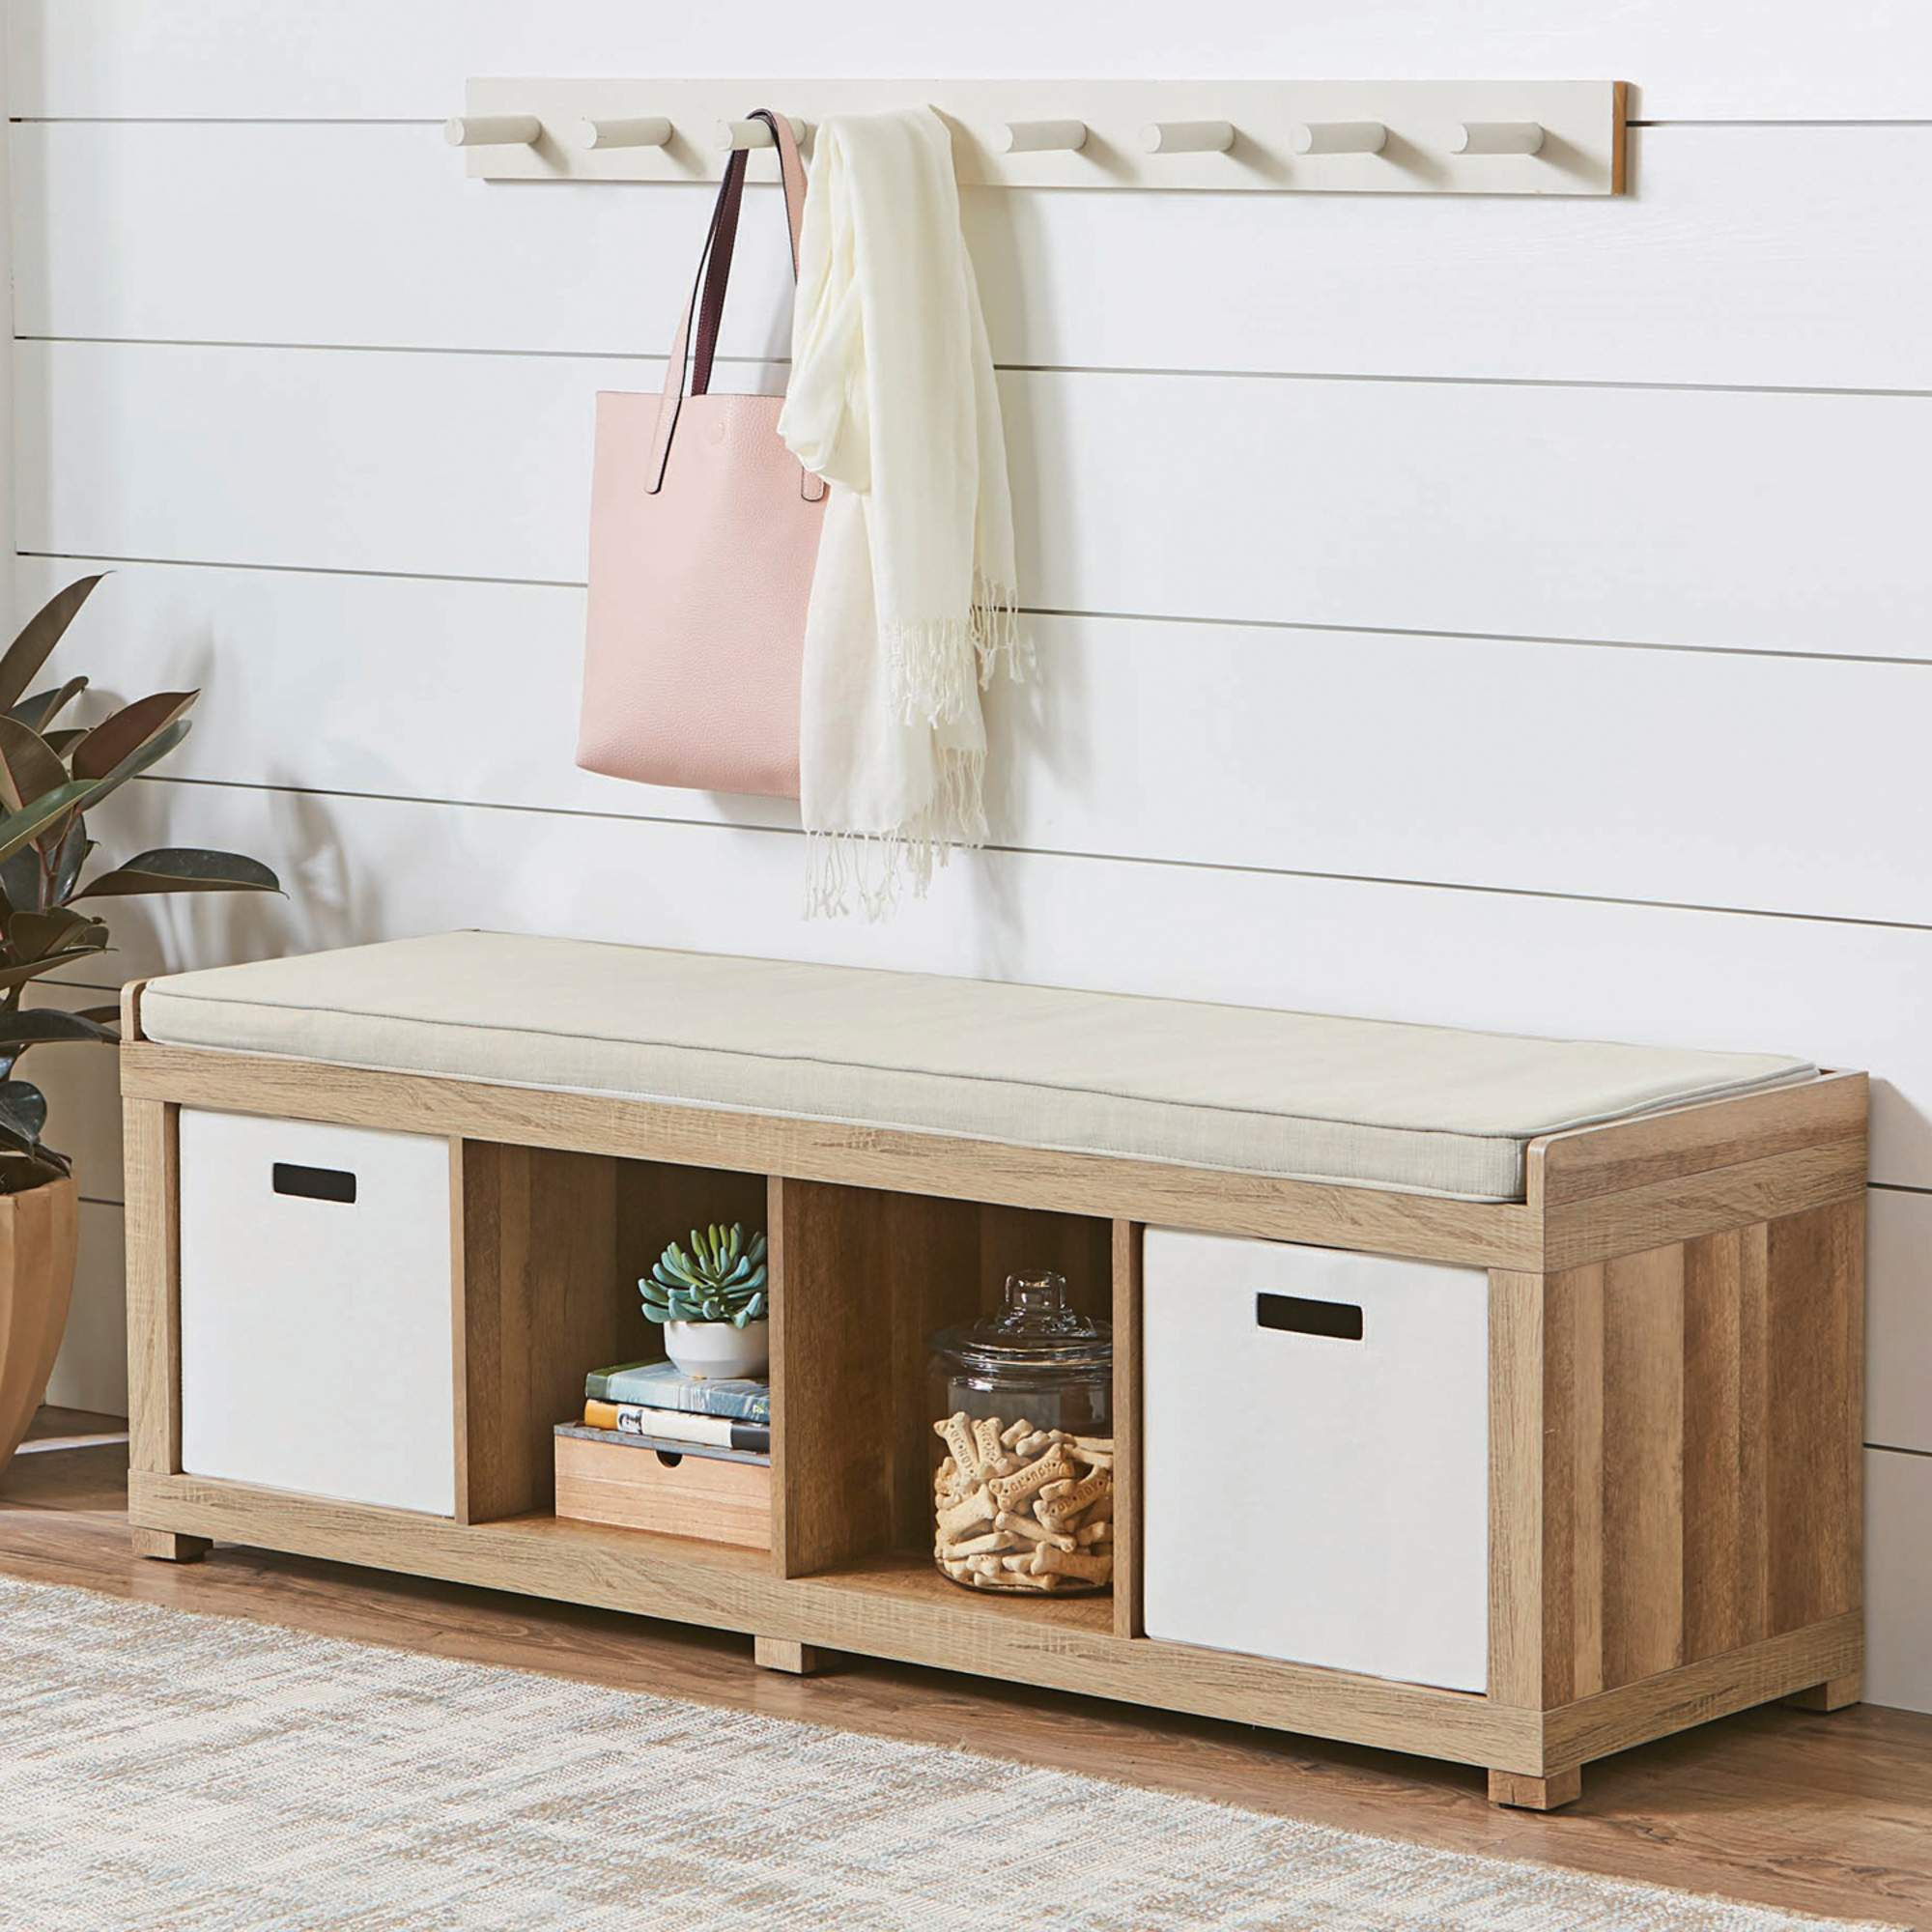 Beau Better Homes And Gardens 4 Cube Organizer Bench, Weathered